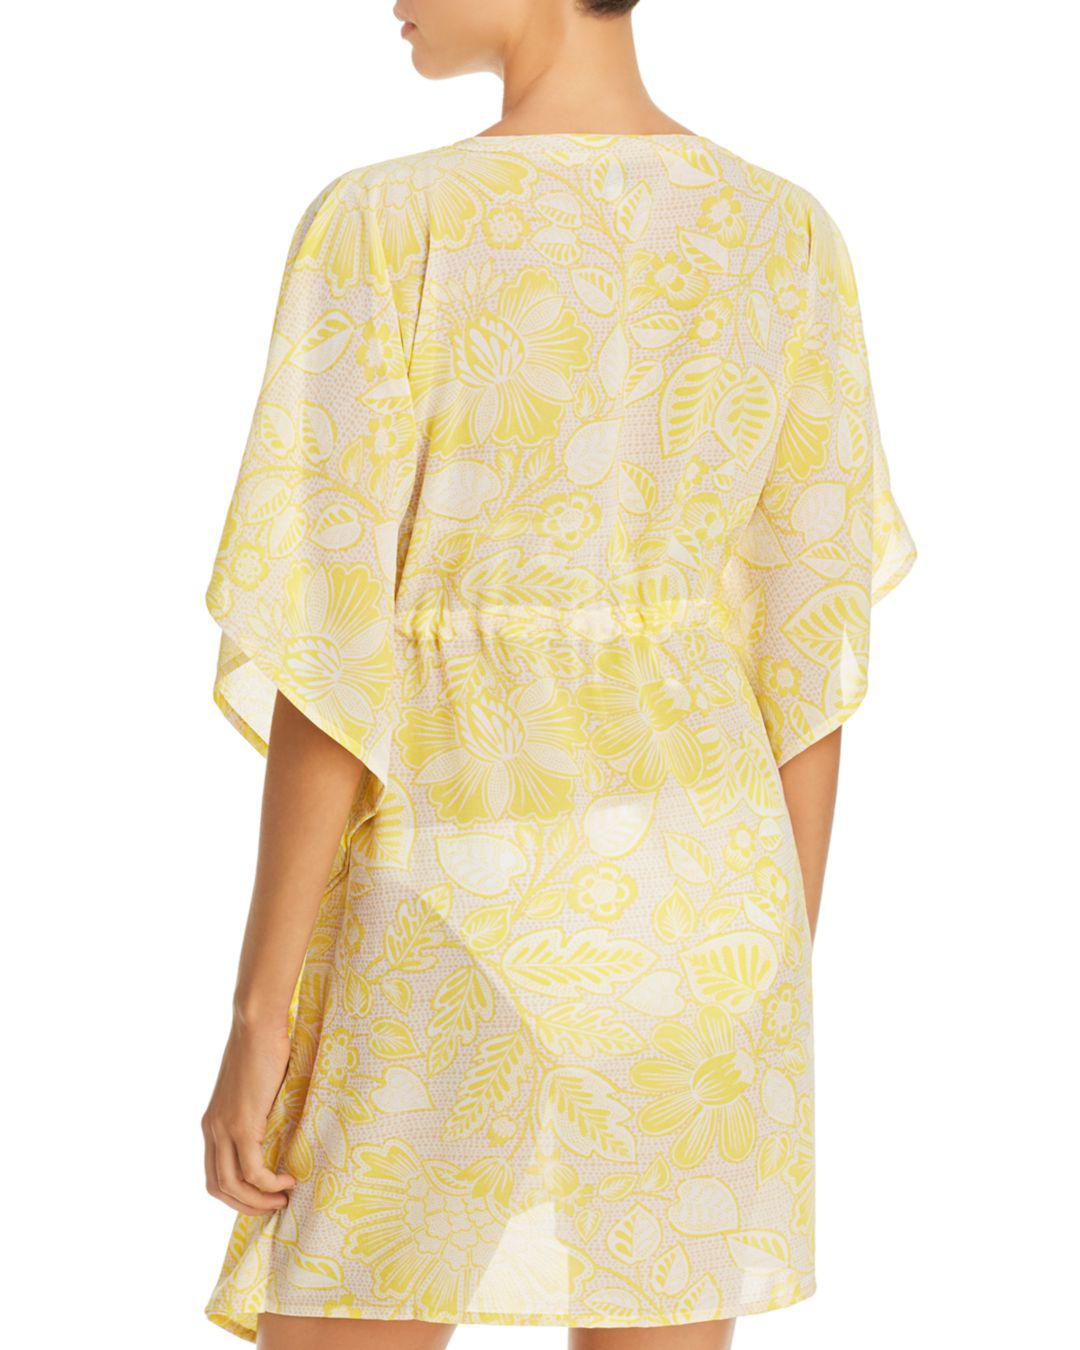 88c1b9a15d1f7 Lyst - Echo Floral Silky Butterfly Cover-up in Yellow